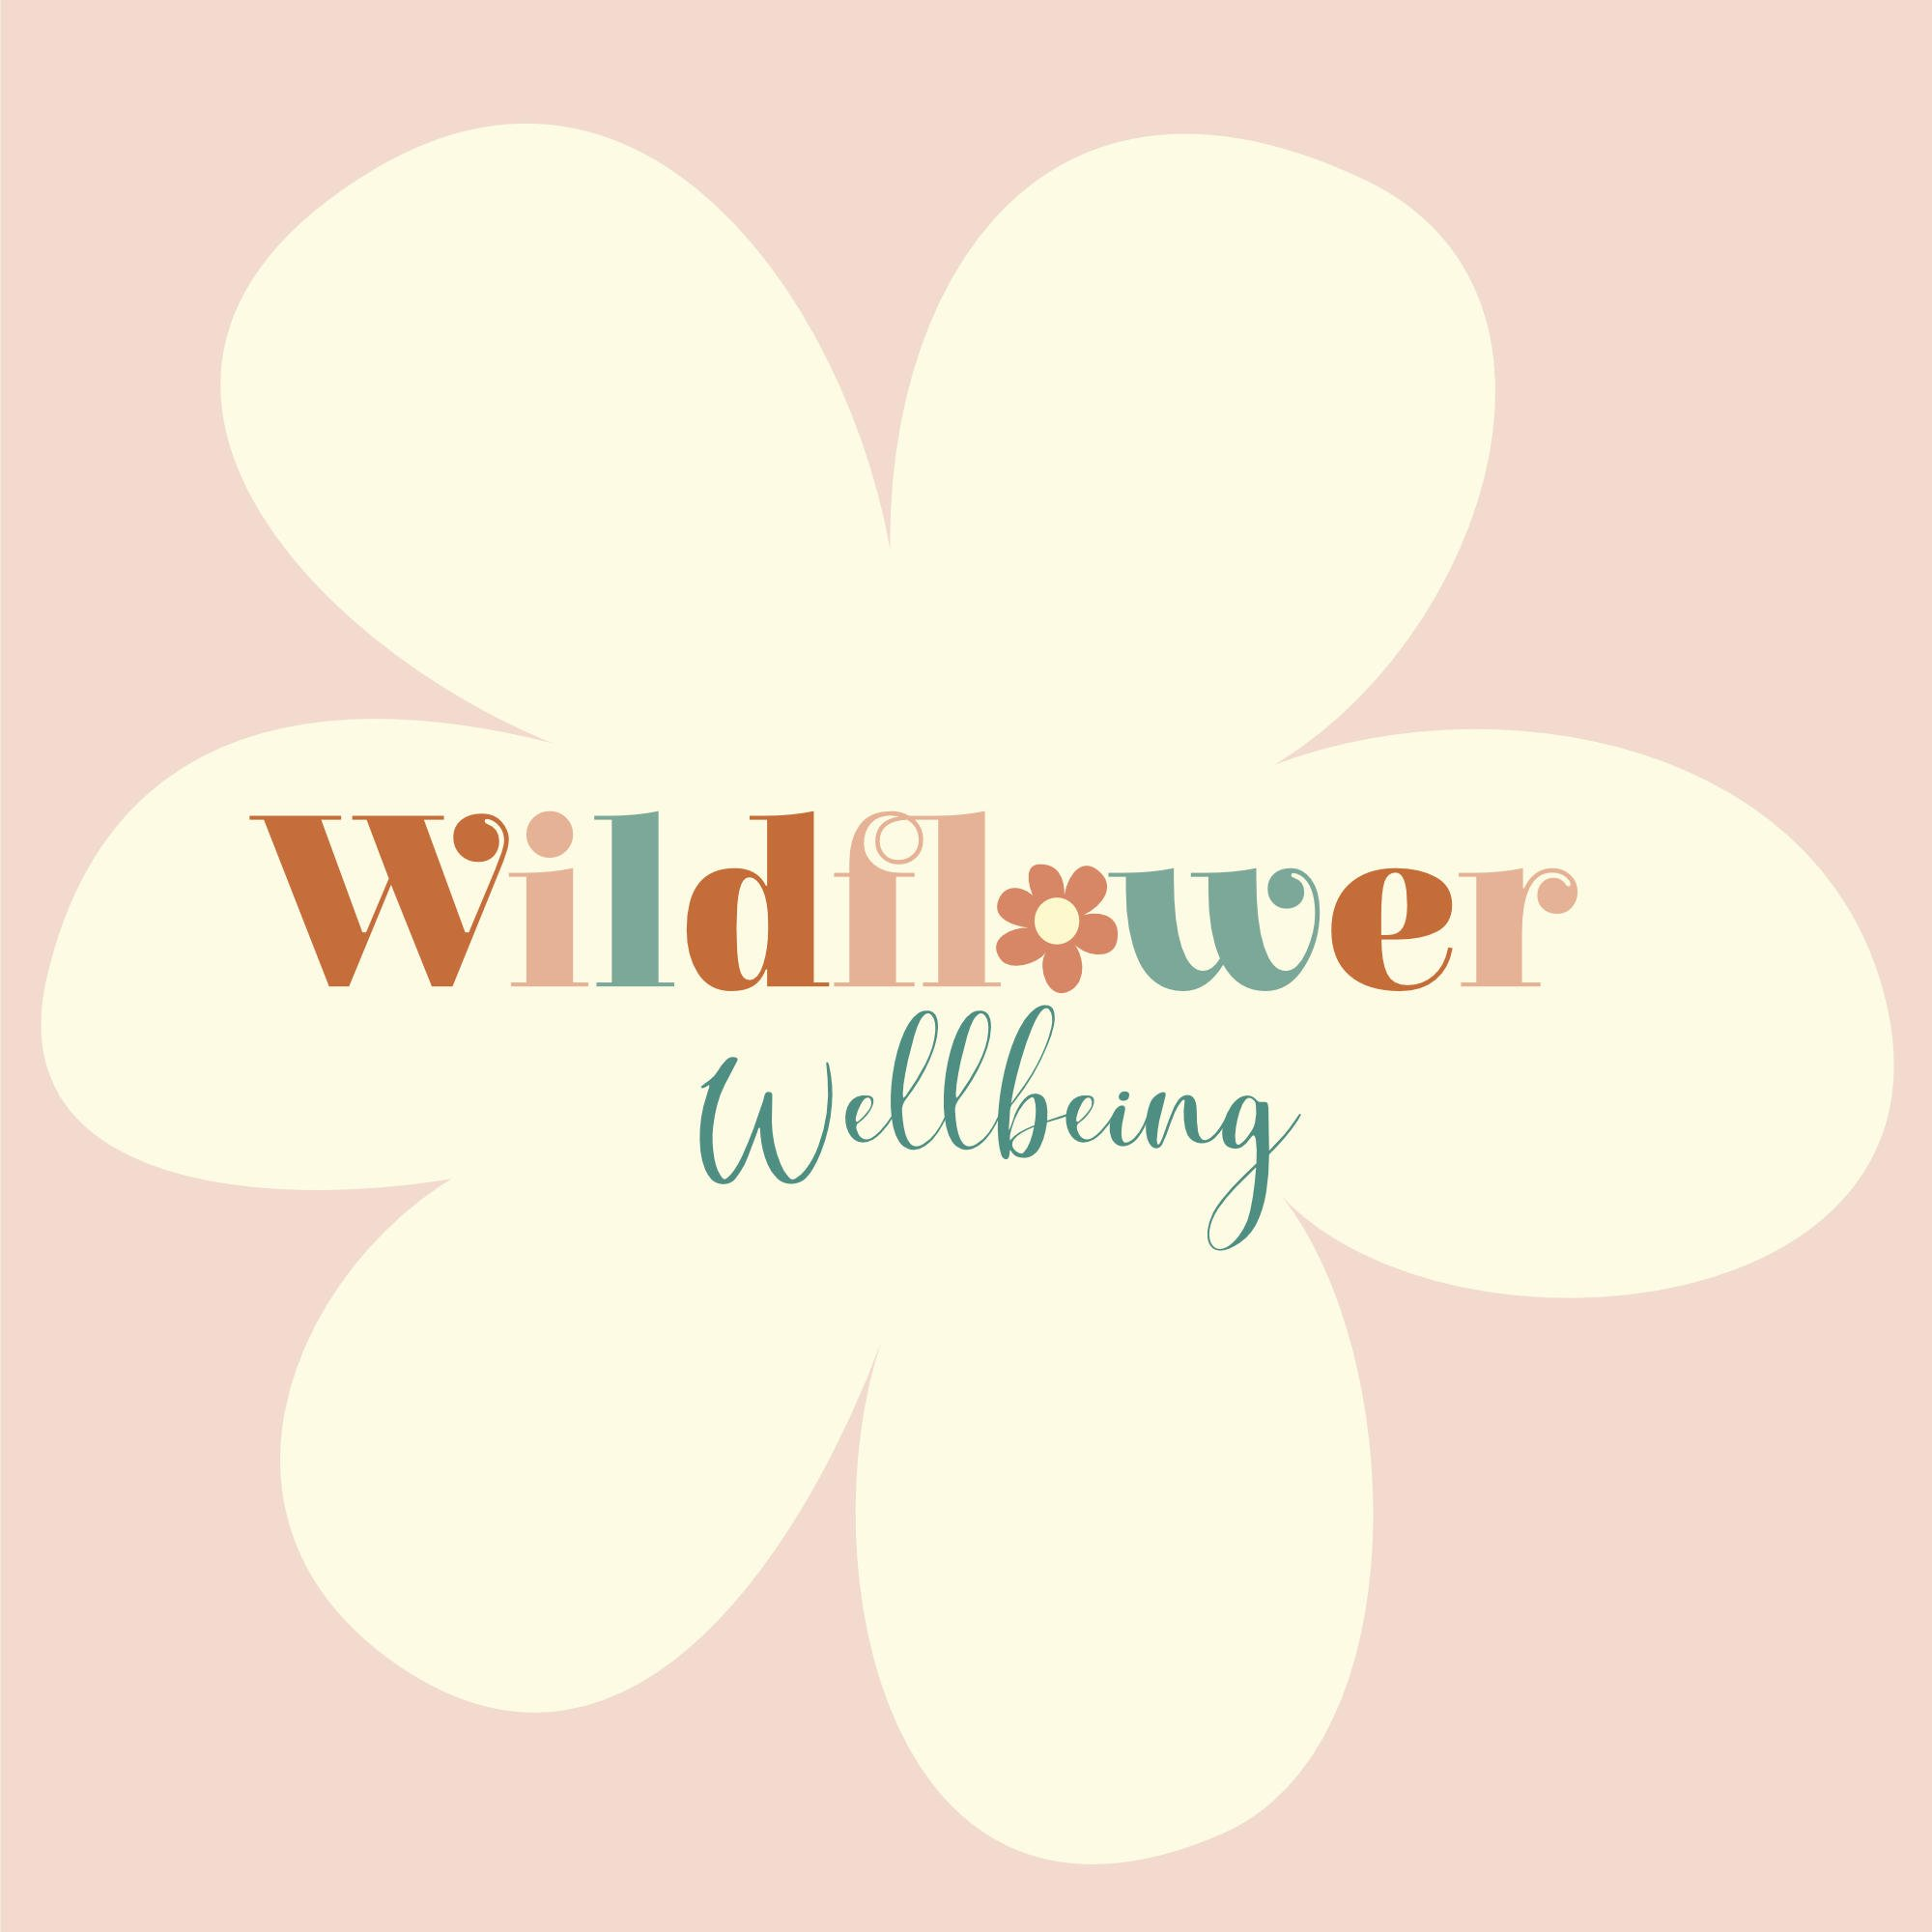 Multi colour Wildflower wellbeing logo on cream flower with pale pink